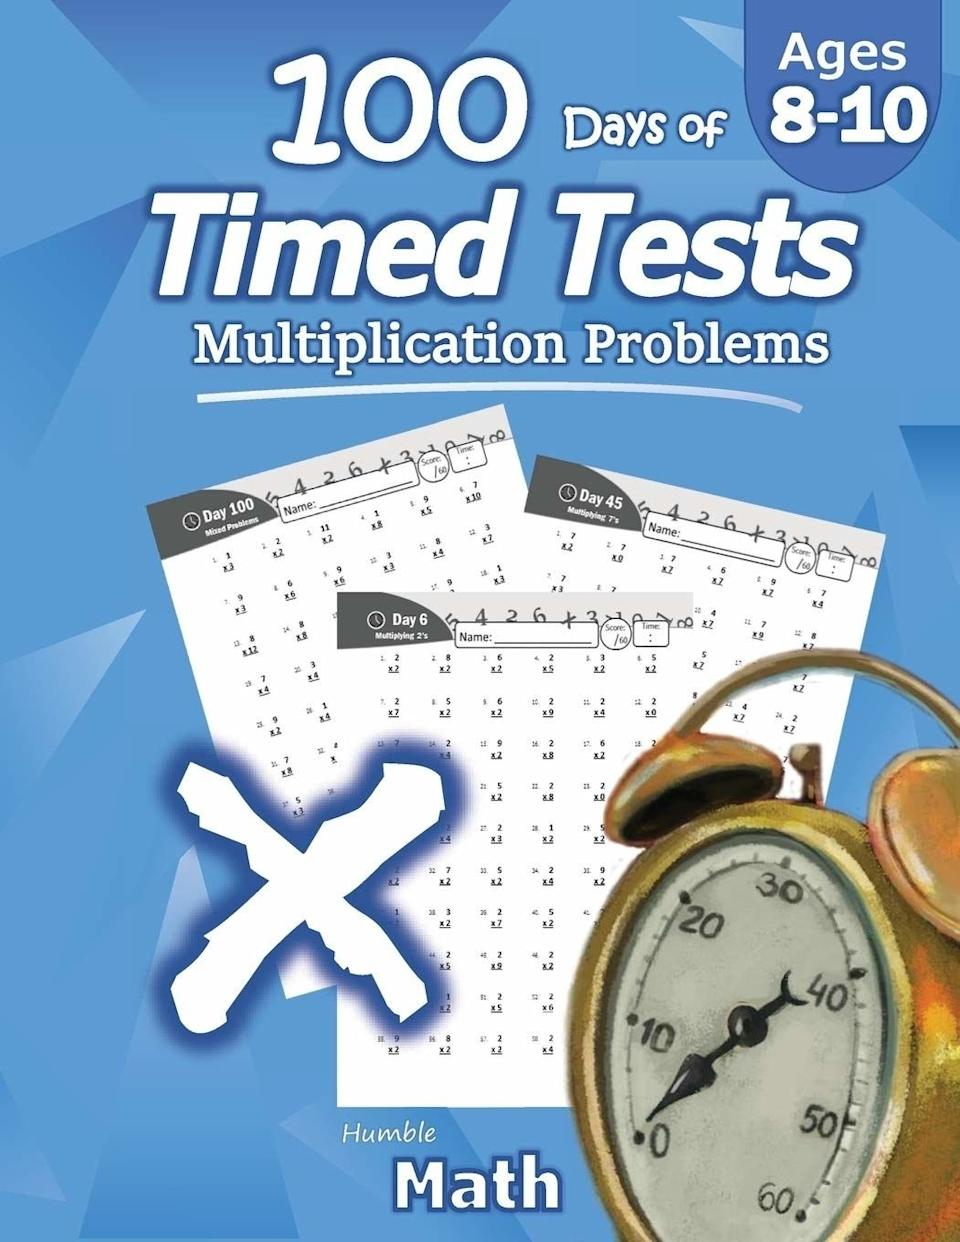 """These are perfect for kids working on multiplication who could use a new take on times tables.<br /><br /><strong>Promising review:</strong>""""My son has loved using this book to improve his math skills. We put it in a binder with some<a href=""""https://www.amazon.com/1884309-Low-Odor-Markers-Assorted-8-Count/dp/B00I8OBAOU?&linkCode=ll1&tag=huffpost-bfsyndication-20&linkId=059319aa79d7d5d21fc059aa7265f3f7&language=en_US&ref_=as_li_ss_tl"""" target=""""_blank"""" rel=""""nofollow noopener noreferrer"""" data-skimlinks-tracking=""""5750537"""" data-vars-affiliate=""""Amazon"""" data-vars-asin=""""B00I8OBAOU"""" data-vars-href=""""https://www.amazon.com/dp/B00I8OBAOU?tag=bfmal-20&ascsubtag=5750537%2C26%2C33%2Cmobile_web%2C0%2C0%2C16108518"""" data-vars-keywords=""""cleaning,fast fashion,skincare"""" data-vars-link-id=""""16108518"""" data-vars-price="""""""" data-vars-product-id=""""17899637"""" data-vars-product-img=""""https://m.media-amazon.com/images/I/51QQ7jEBAzL.jpg"""" data-vars-product-title=""""EXPO 1884309 Low-Odor Dry Erase Markers, Ultra Fine Tip, Assorted Colors, 8-Count"""" data-vars-retailers=""""Amazon"""">dry erase markers</a>so it can be used over and over, which is especially helpful on pages he has trouble with. He likes to time himself to see how much he's improved! Highly recommend!"""" —<a href=""""https://www.amazon.com/gp/customer-reviews/R229H902MTXZ05?&linkCode=ll2&tag=huffpost-bfsyndication-20&linkId=80dd96c84f7a3bc4c1a30487710a0502&language=en_US&ref_=as_li_ss_tl"""" target=""""_blank"""" rel=""""nofollow noopener noreferrer"""" data-skimlinks-tracking=""""5750537"""" data-vars-affiliate=""""Amazon"""" data-vars-href=""""https://www.amazon.com/gp/customer-reviews/R229H902MTXZ05?tag=bfmal-20&ascsubtag=5750537%2C26%2C33%2Cmobile_web%2C0%2C0%2C0"""" data-vars-keywords=""""cleaning,fast fashion,skincare"""" data-vars-link-id=""""0"""" data-vars-price="""""""" data-vars-retailers=""""Amazon"""">Jessika C</a><br /><br /><strong>Get them from Amazon for<a href=""""https://www.amazon.com/Humble-Math-Multiplication-Reproducible-Practice/dp/1635783011?&linkCode=ll1&tag=huffpost-bfsyndication-20&lin"""